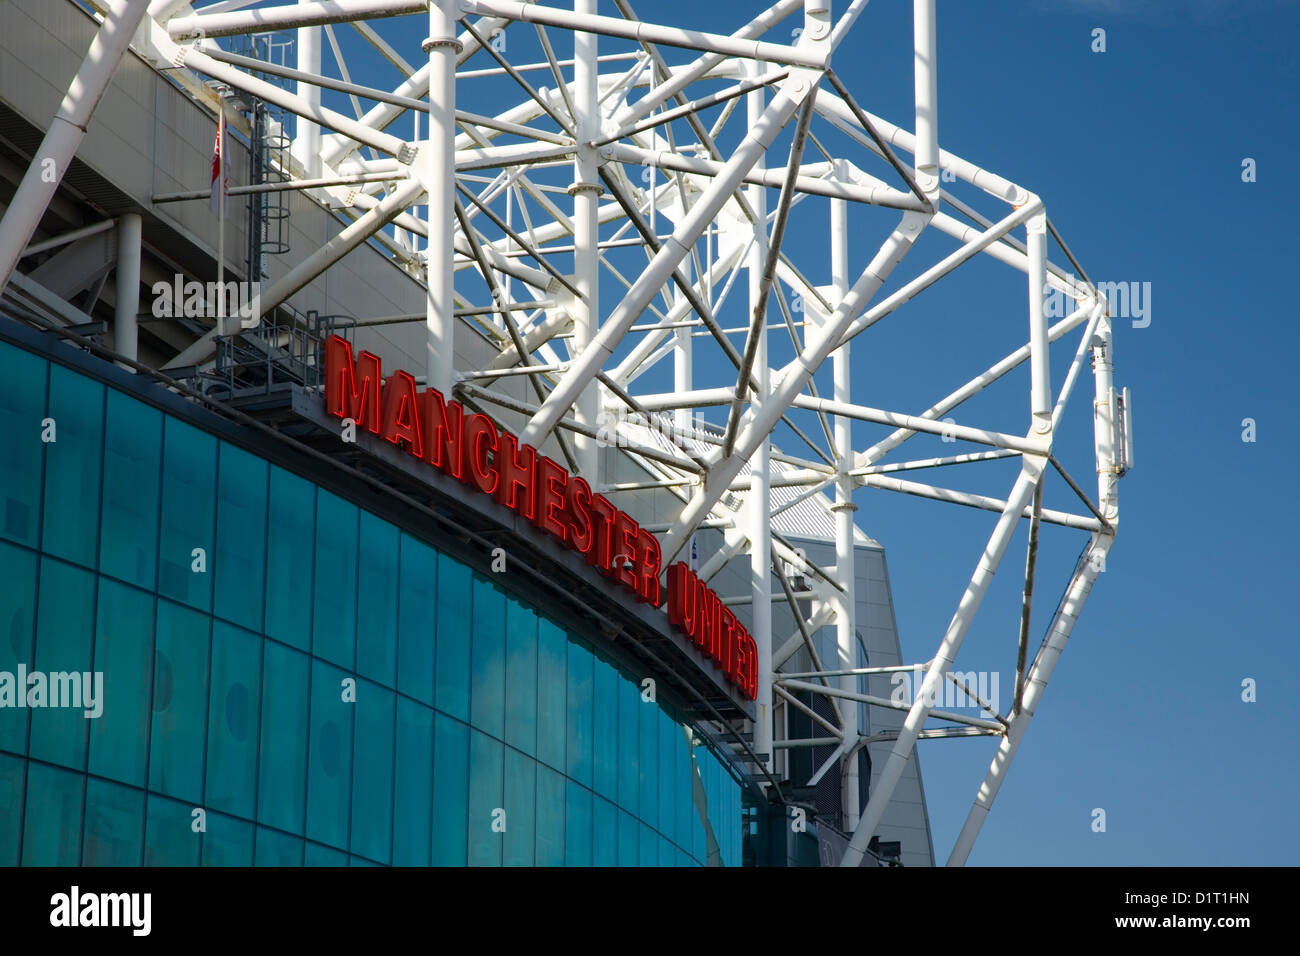 Old Trafford, Manchester, Greater Manchester, England. East façade of the Manchester United football stadium. - Stock Image